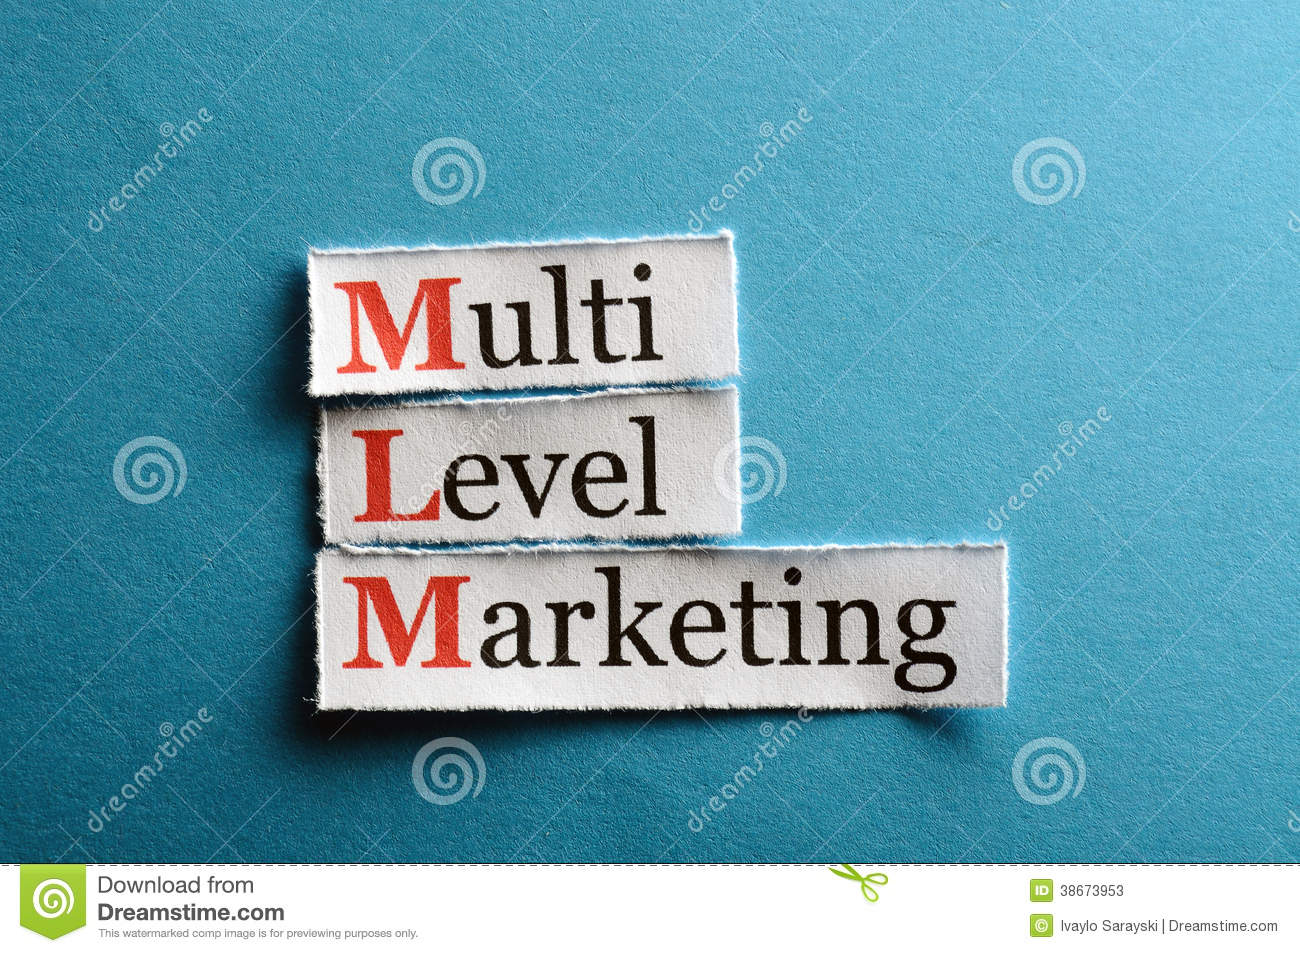 research paper on multi level marketing Mark januszewski world's laziest laundry products, and paper products lg h&h cosmetics products comprise foam cleansers marketing style: multi-level.